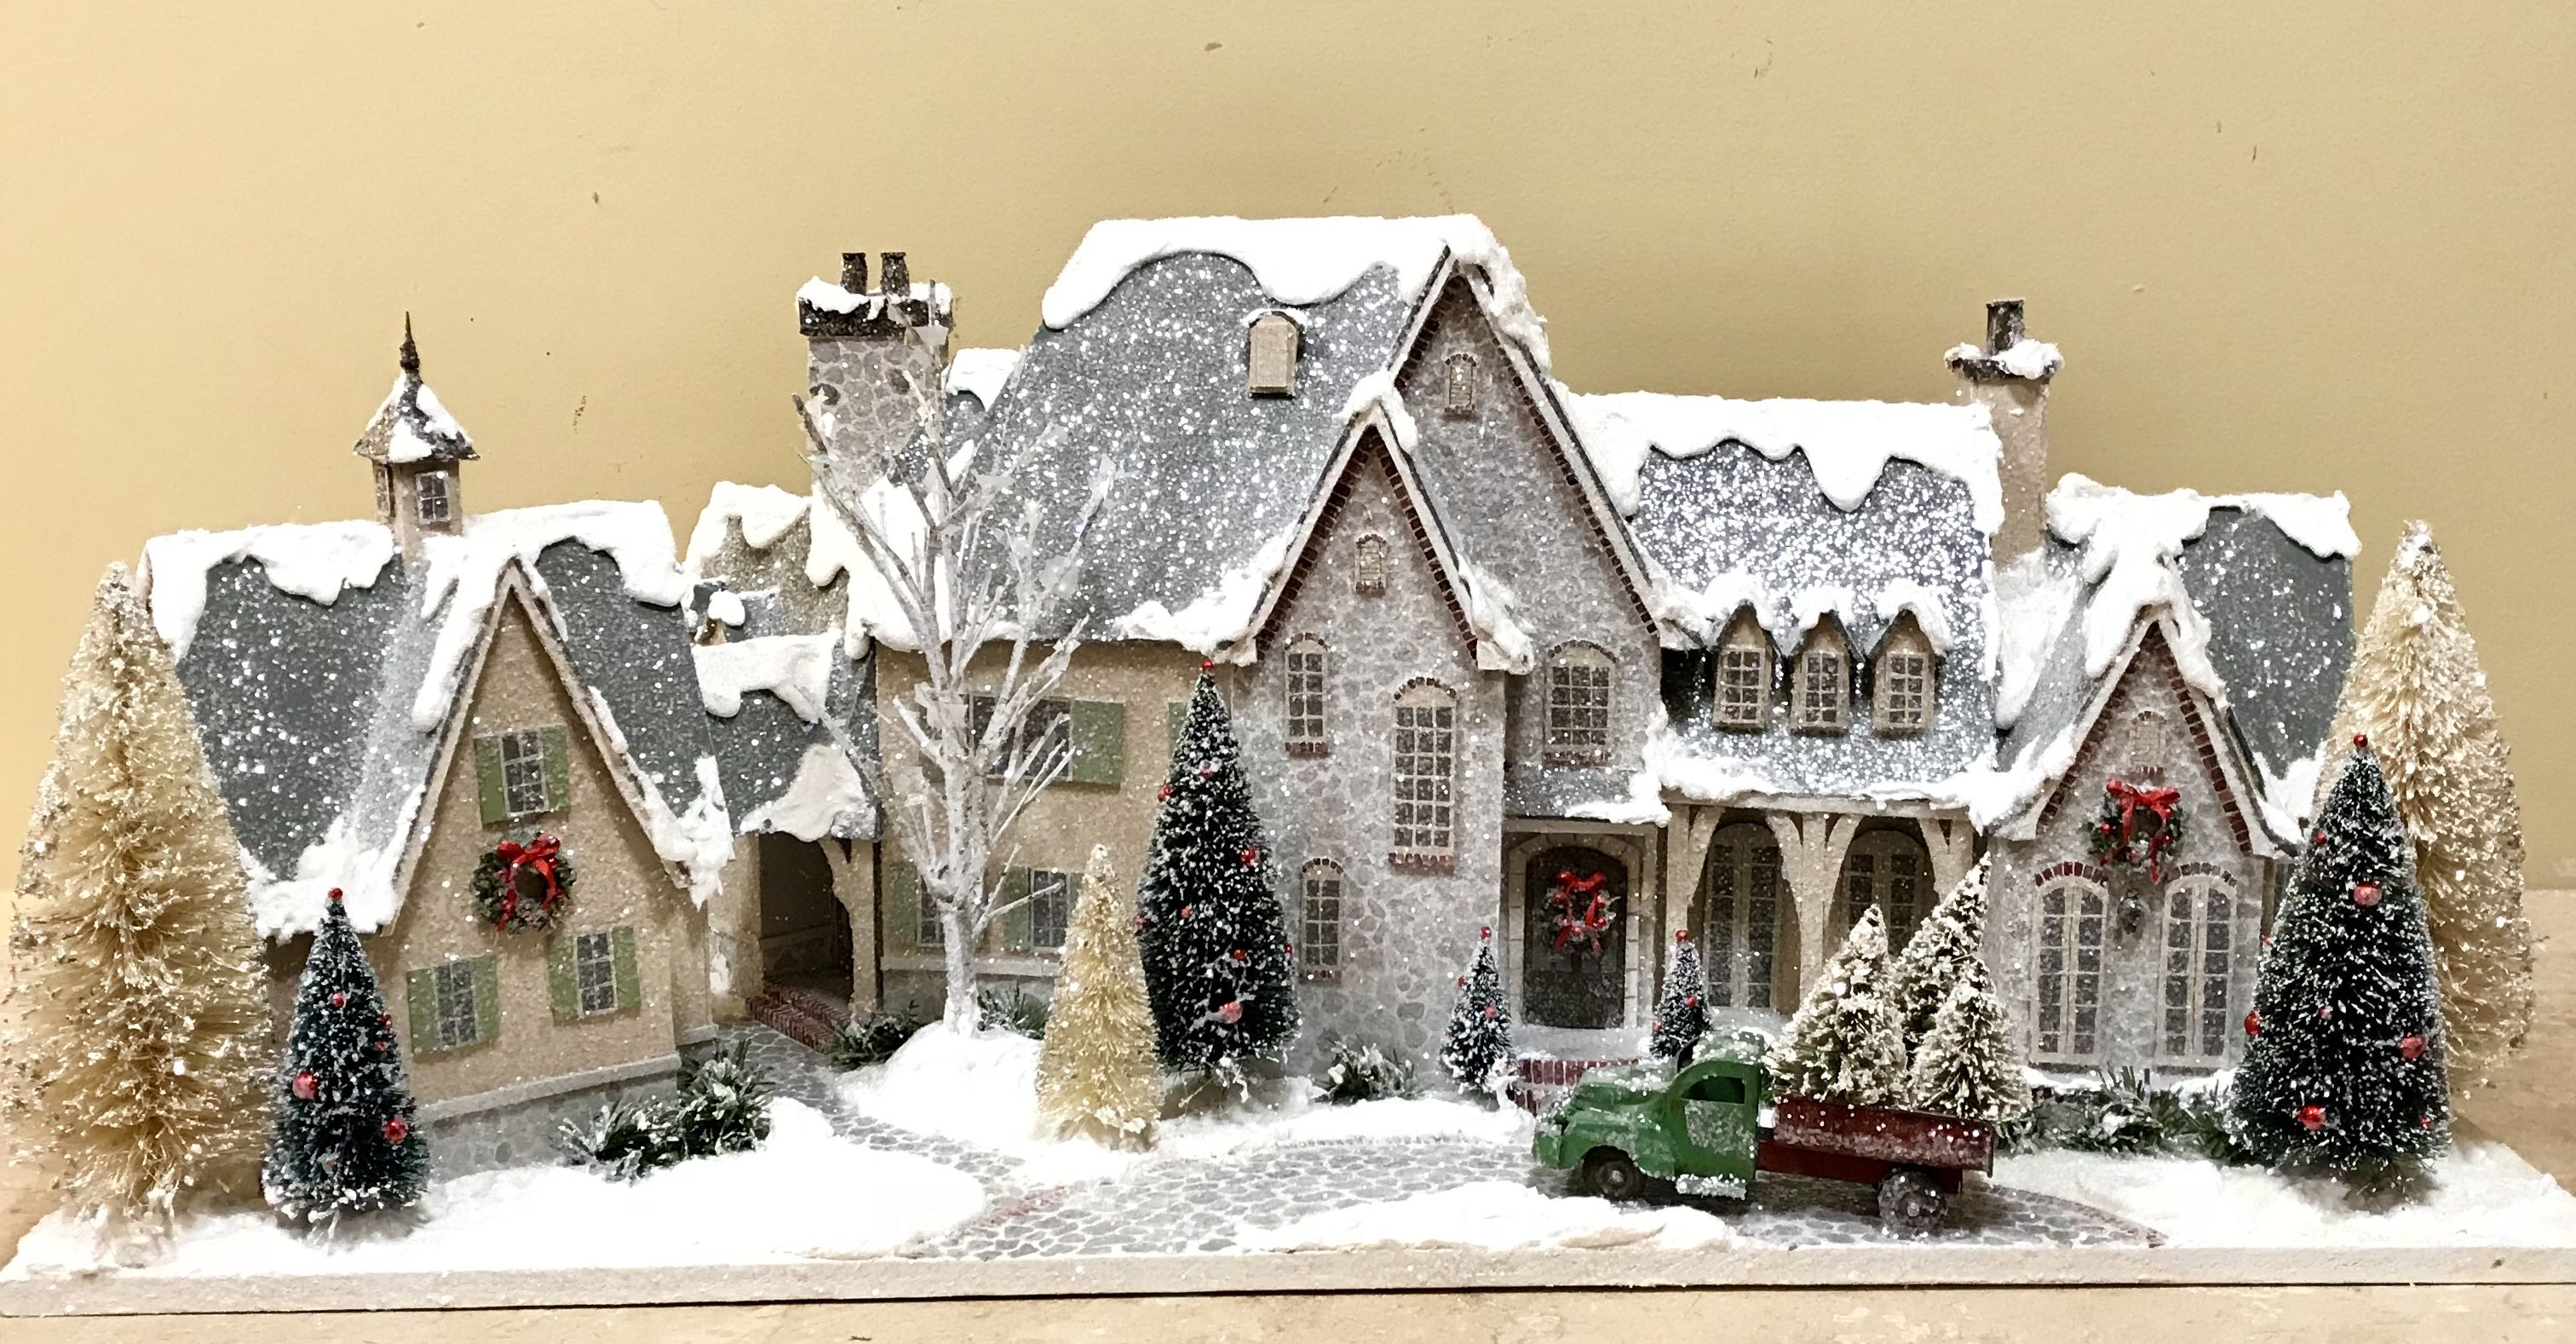 The Miles House Christmas Glitter Houses By Tracey Pfeiffer Christmas Village Houses Glitter Houses Christmas Village Display